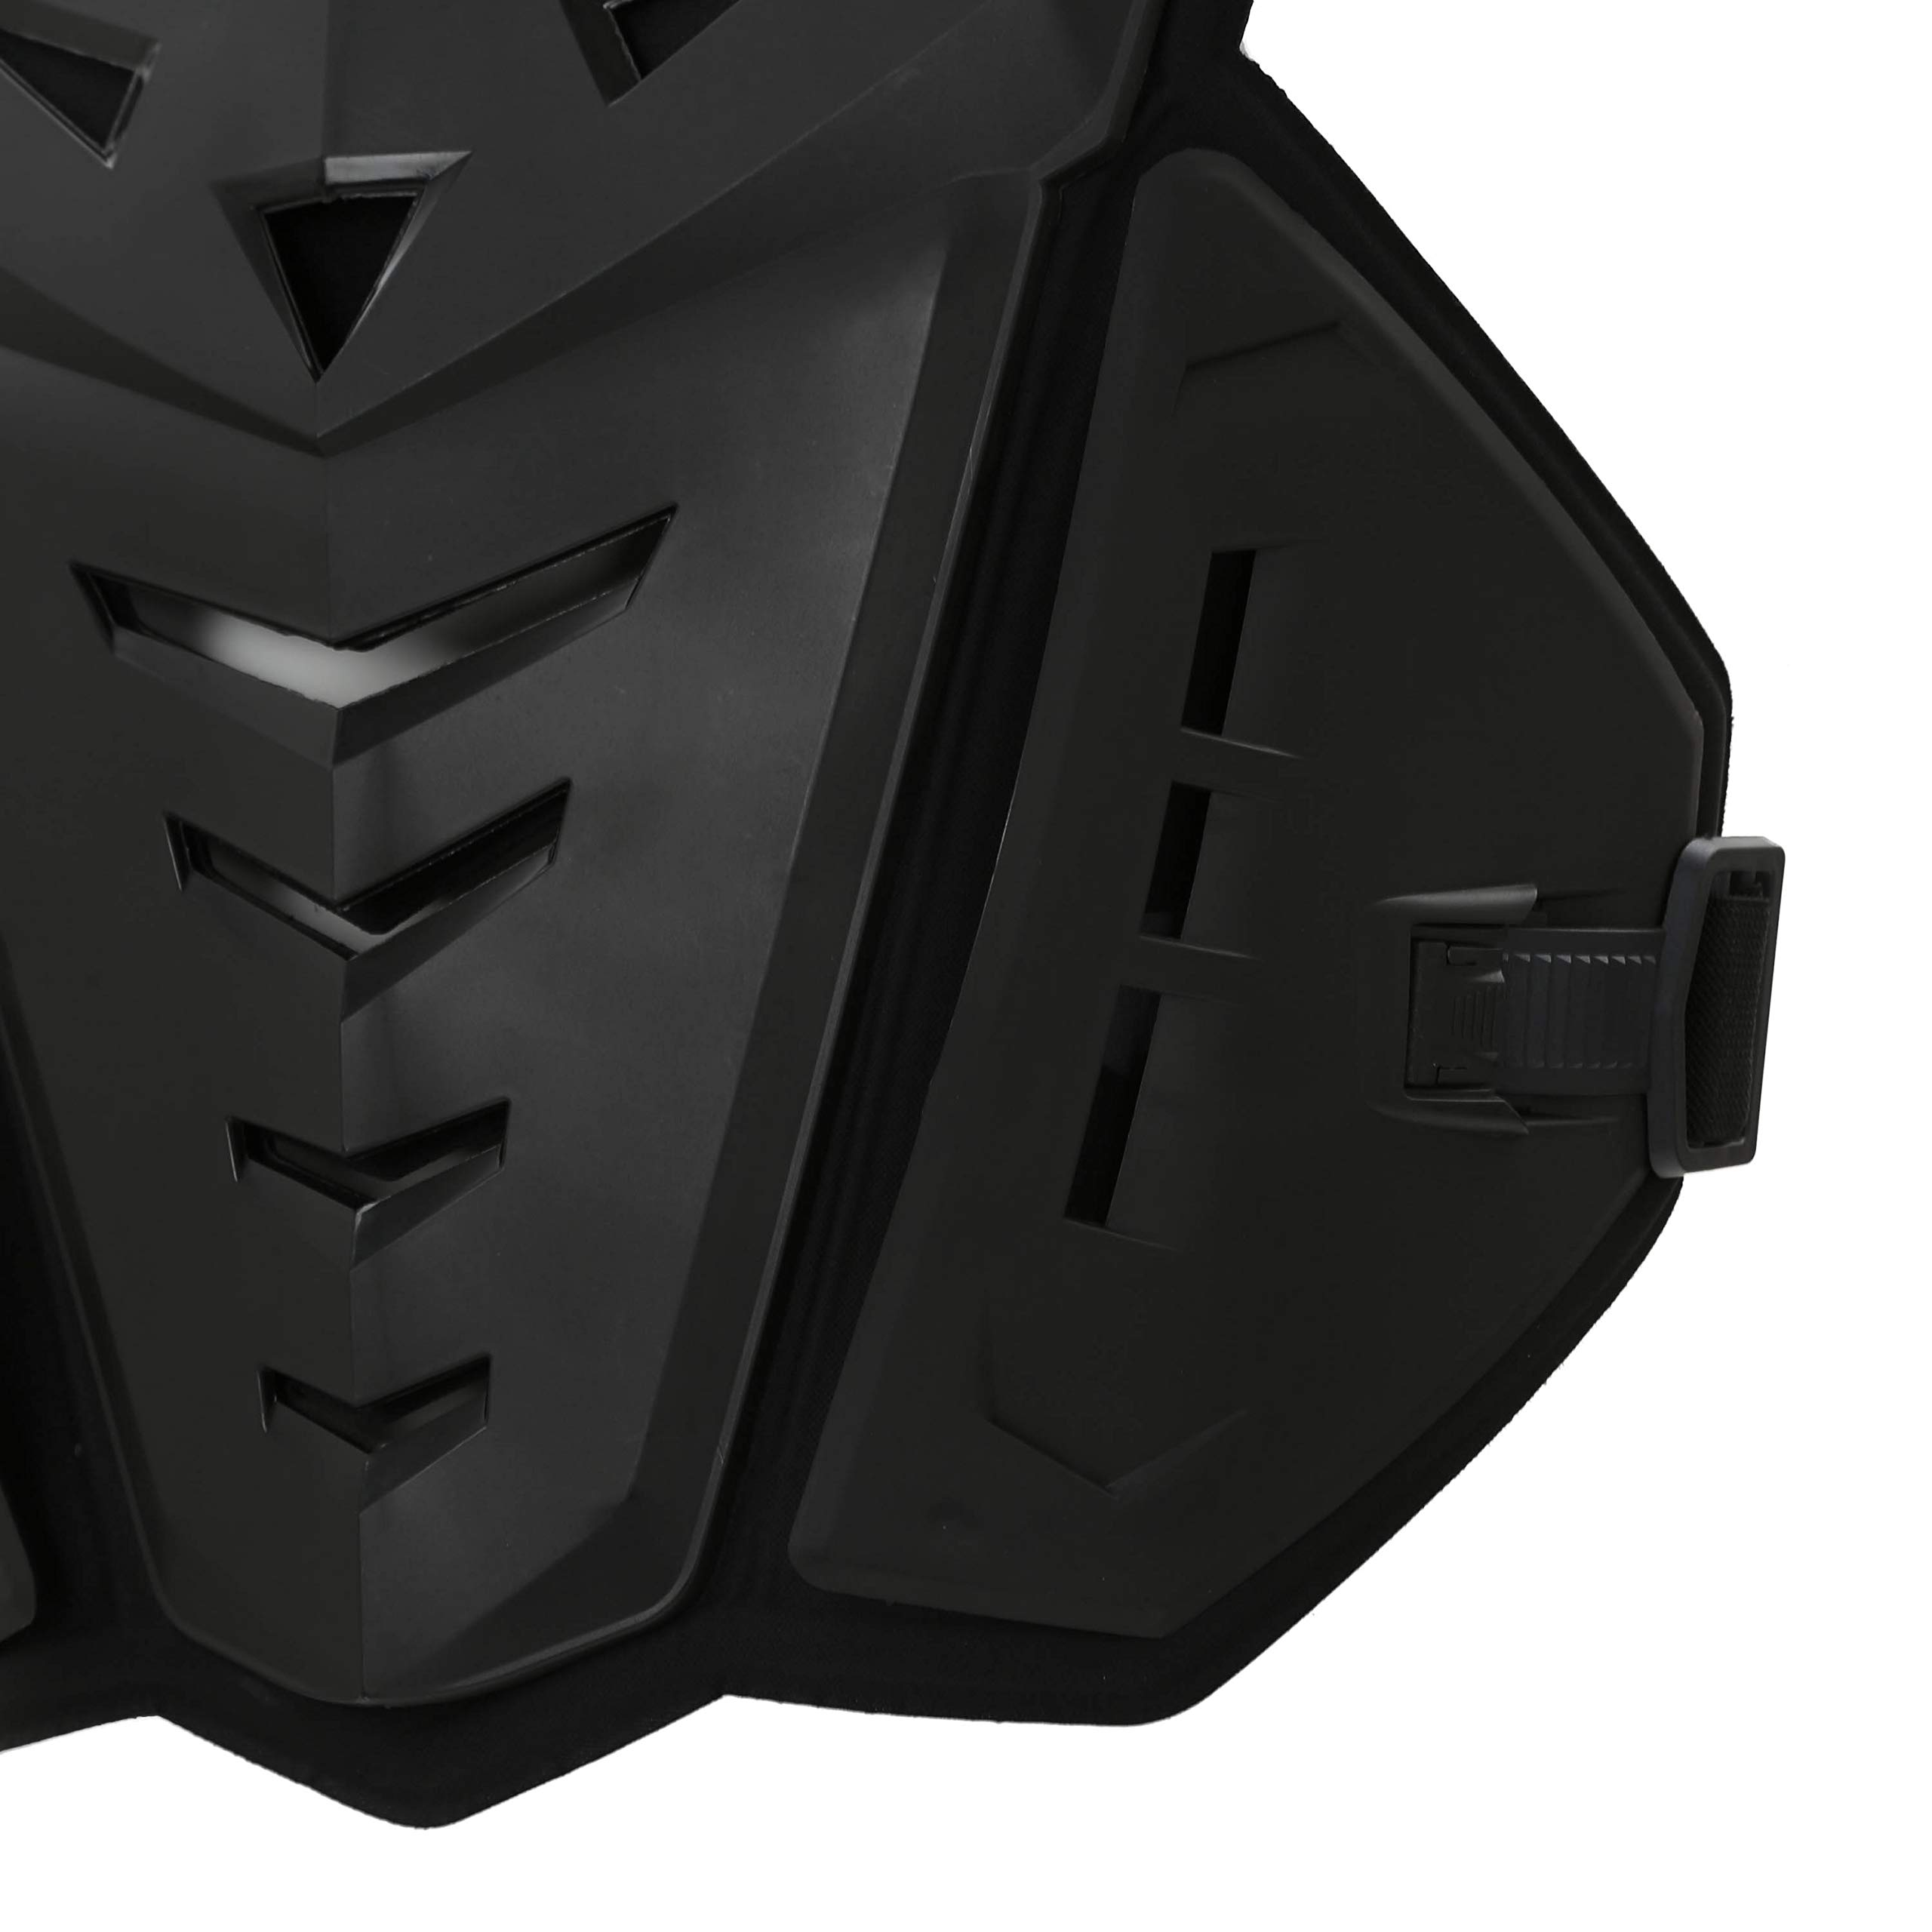 OHMOTOR Chest Back Protector Motorcycle Armor Vest Motorcycle Riding Chest Armor (Black) by OHMOTOR (Image #3)